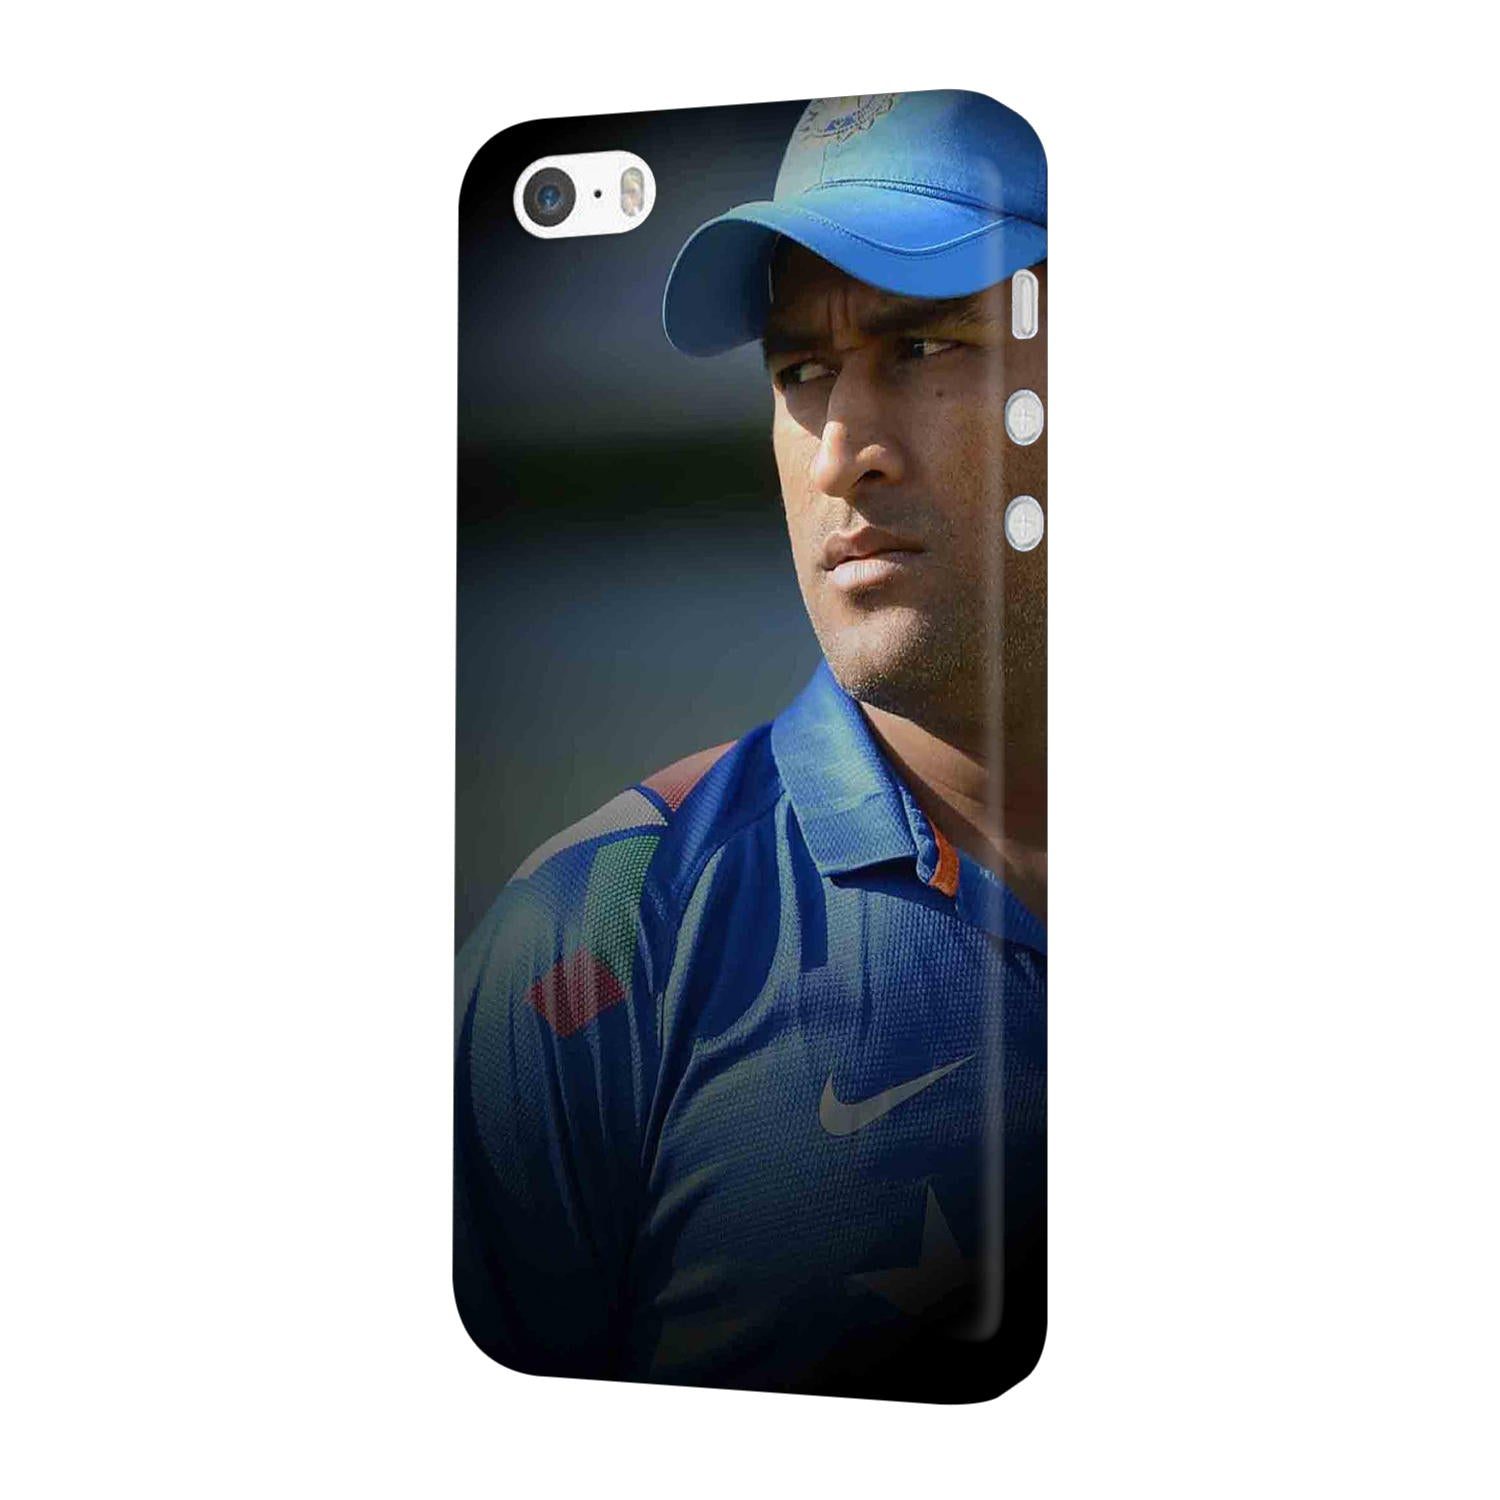 Dhoni Spotlight iPhone 5 Mobile Cover Case - MADANYU